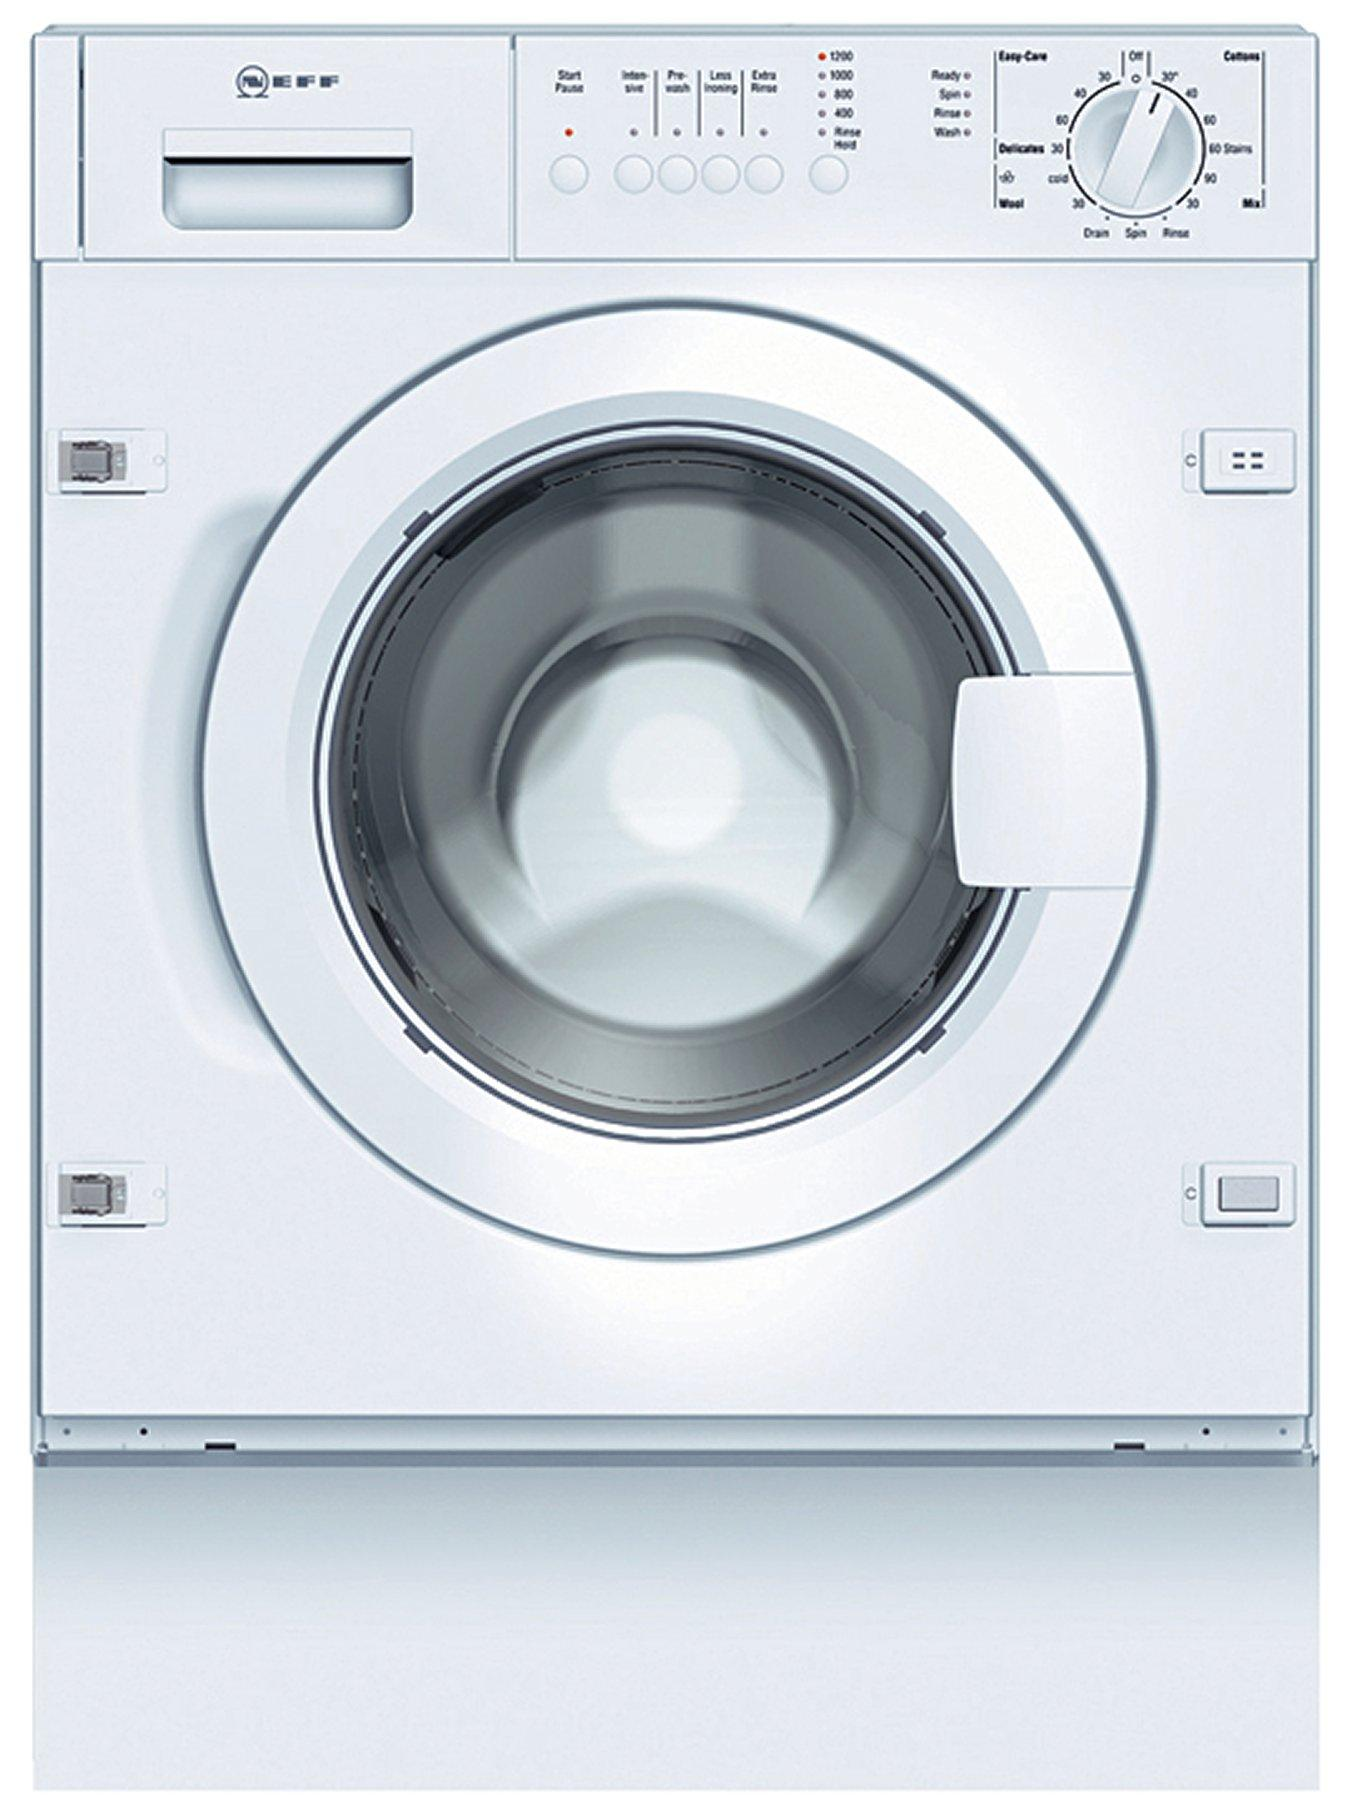 Buy Cheap Neff W5420x0gb Compare Washing Machines Prices